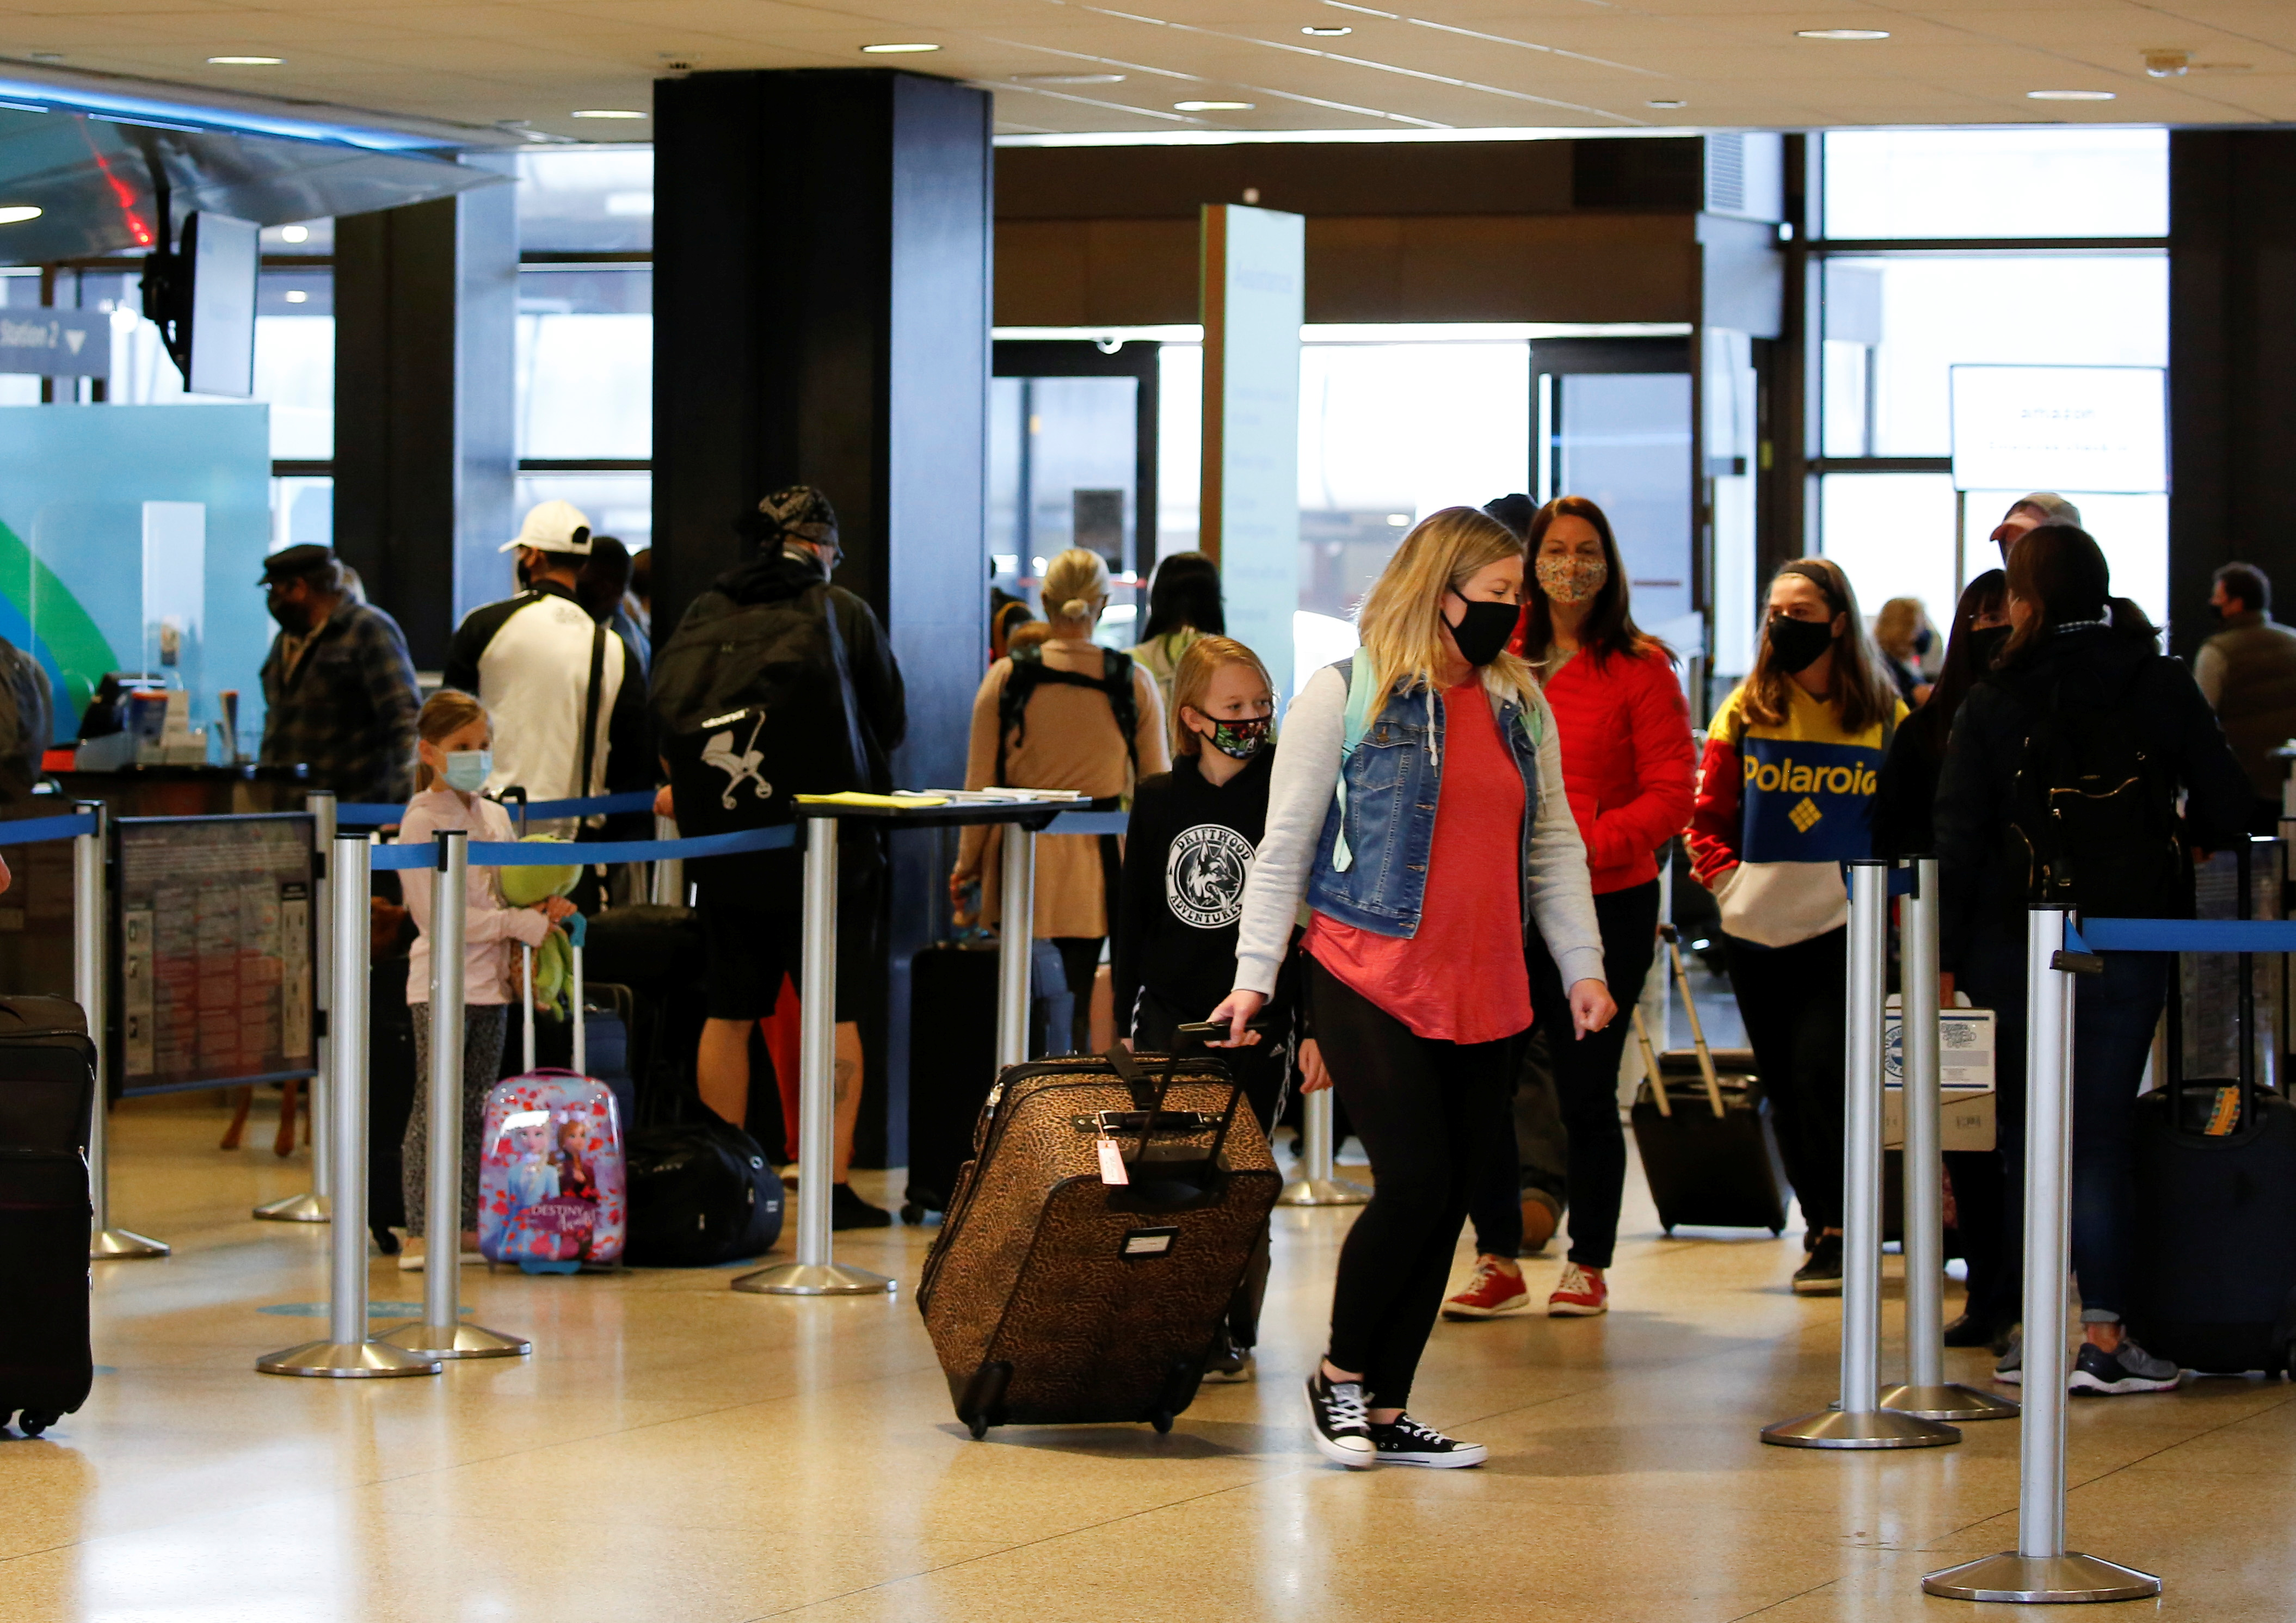 Travelers stand at check-in lines at Seattle-Tacoma International Airport in SeaTac, Washington, U.S. April 12, 2021.  REUTERS/Lindsey Wasson